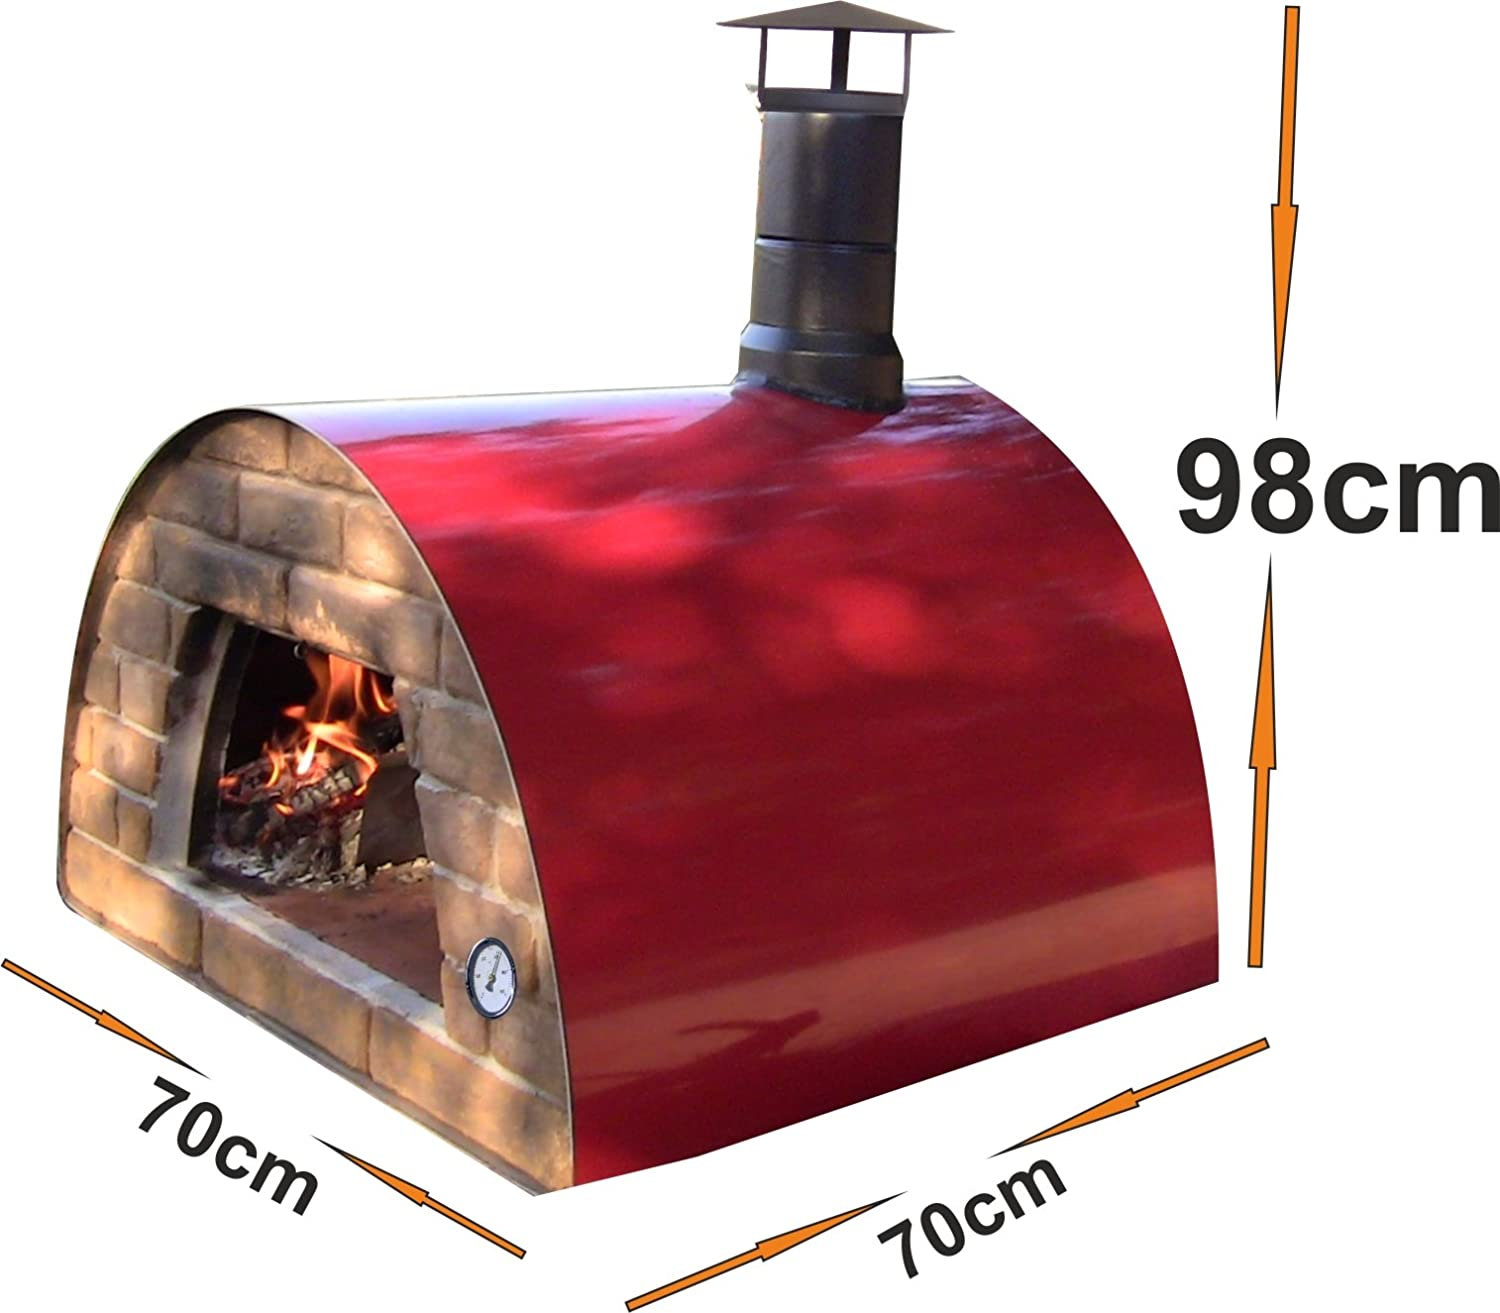 Portable wood fired pizza oven for sale - Amazon Com Mobile Portable Wood Fired Pizza Oven Maximus Red Garden Outdoor